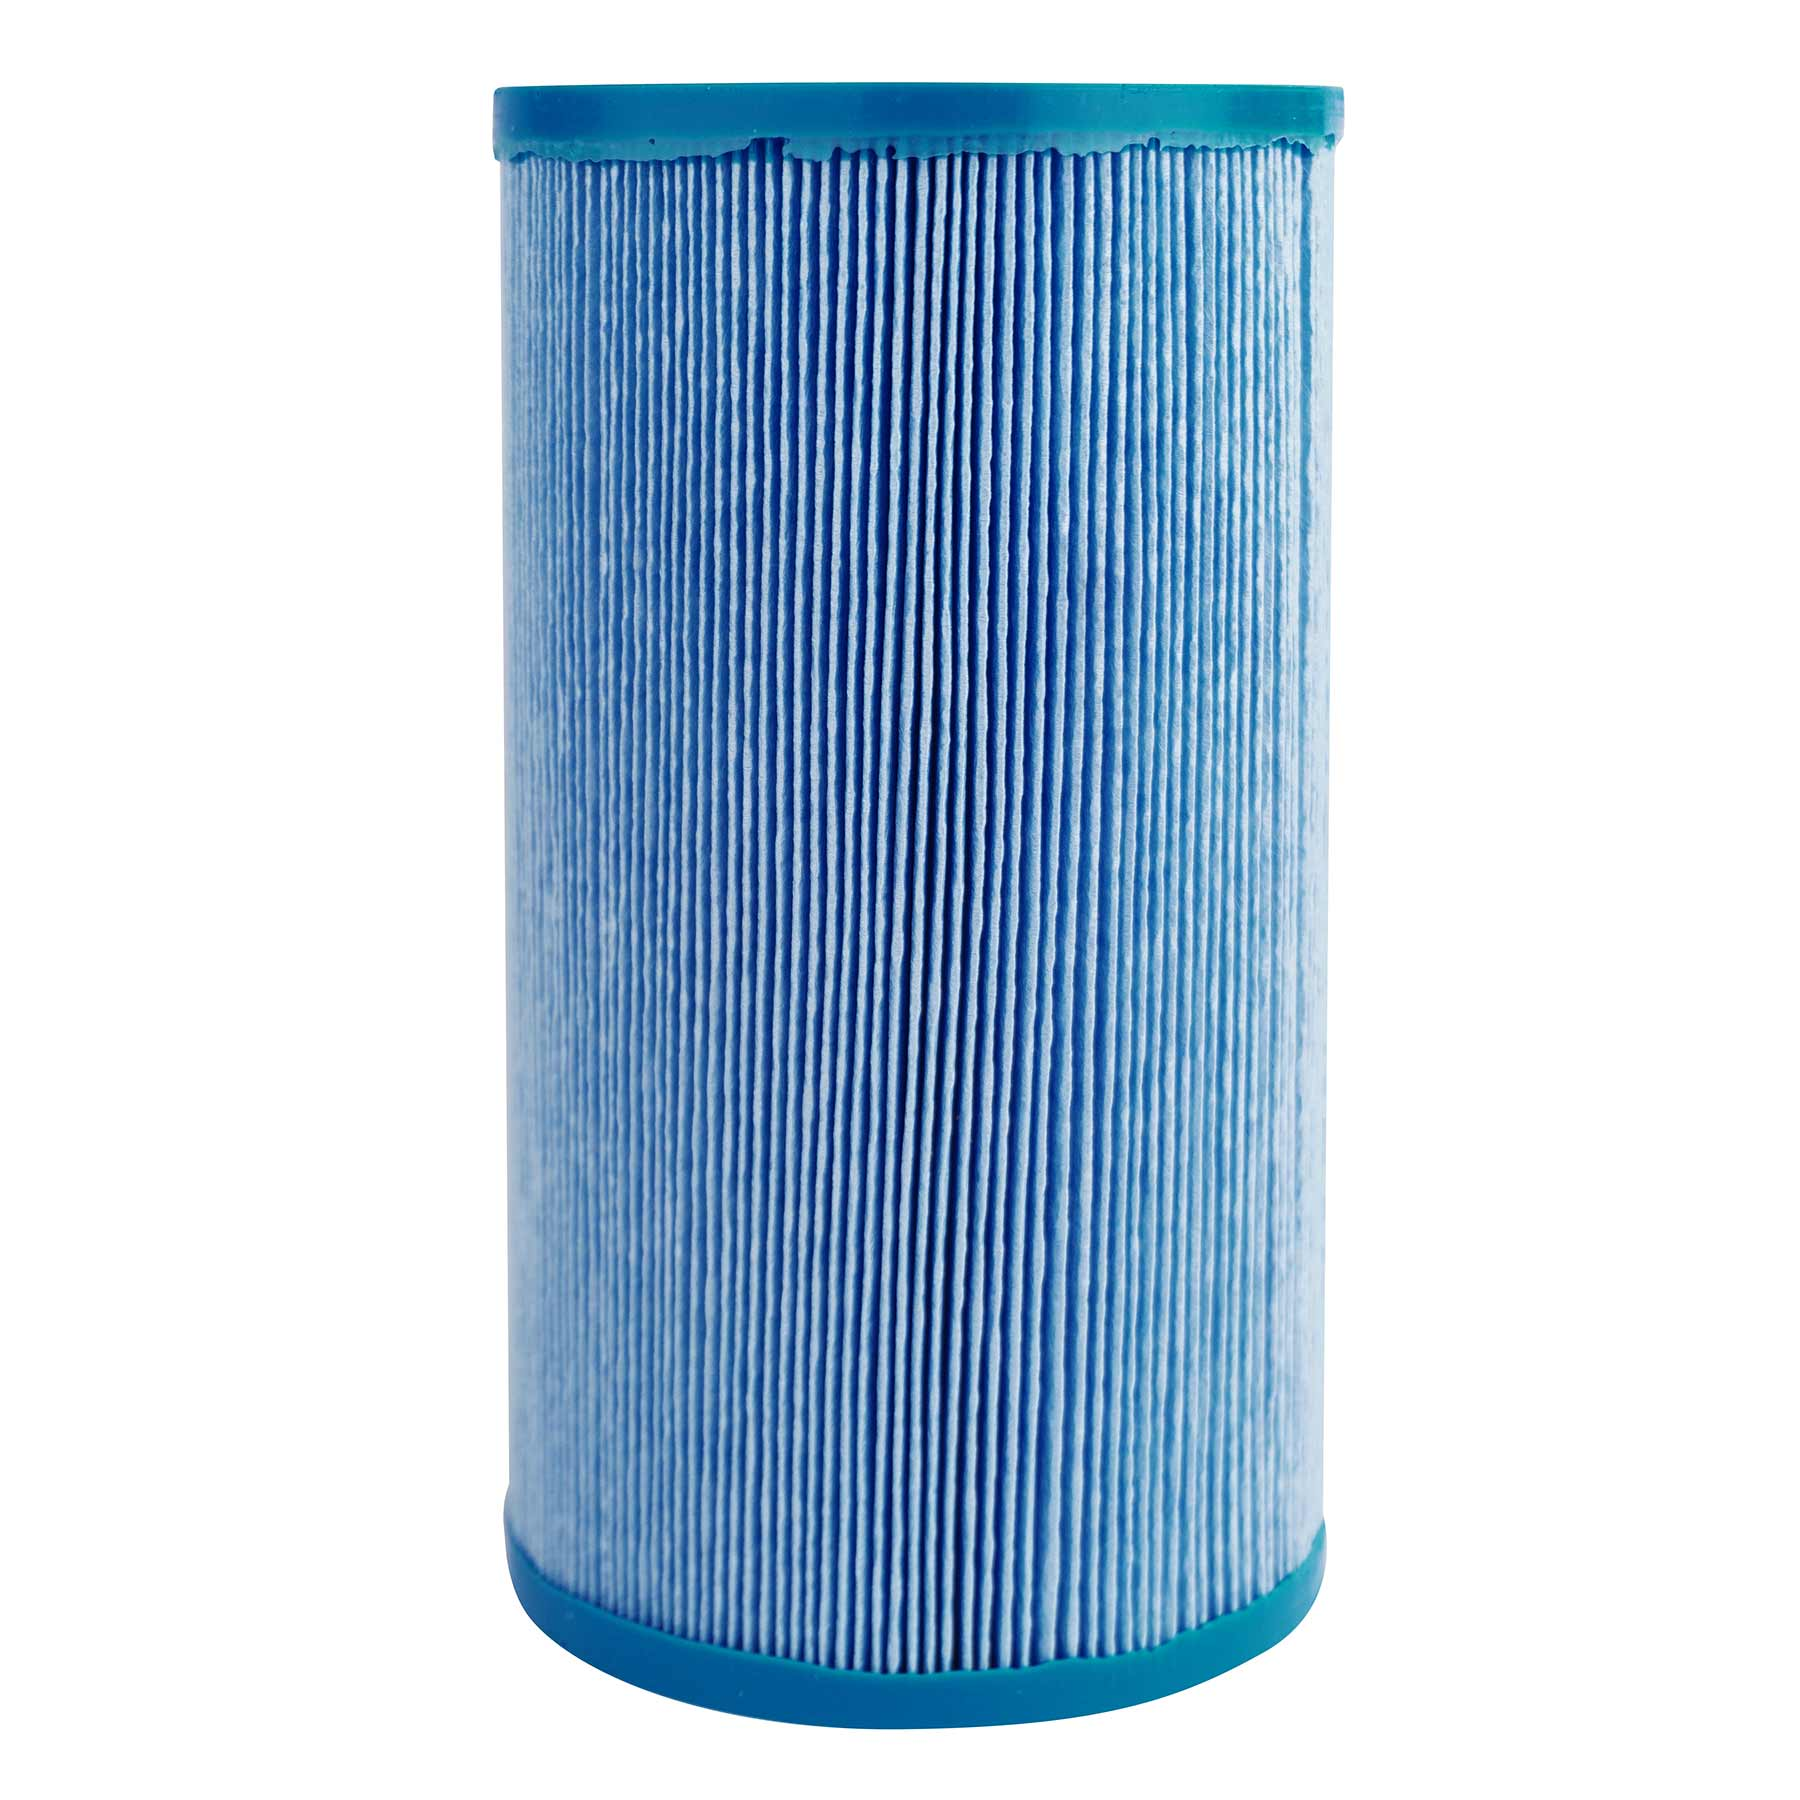 Replaces Filbur FC1001M, Pleatco PMA10-M - Antimicrobial Pool, Hot Tub & Spa Filter Cartridge-Filter Cartridge-FilterDeal.com